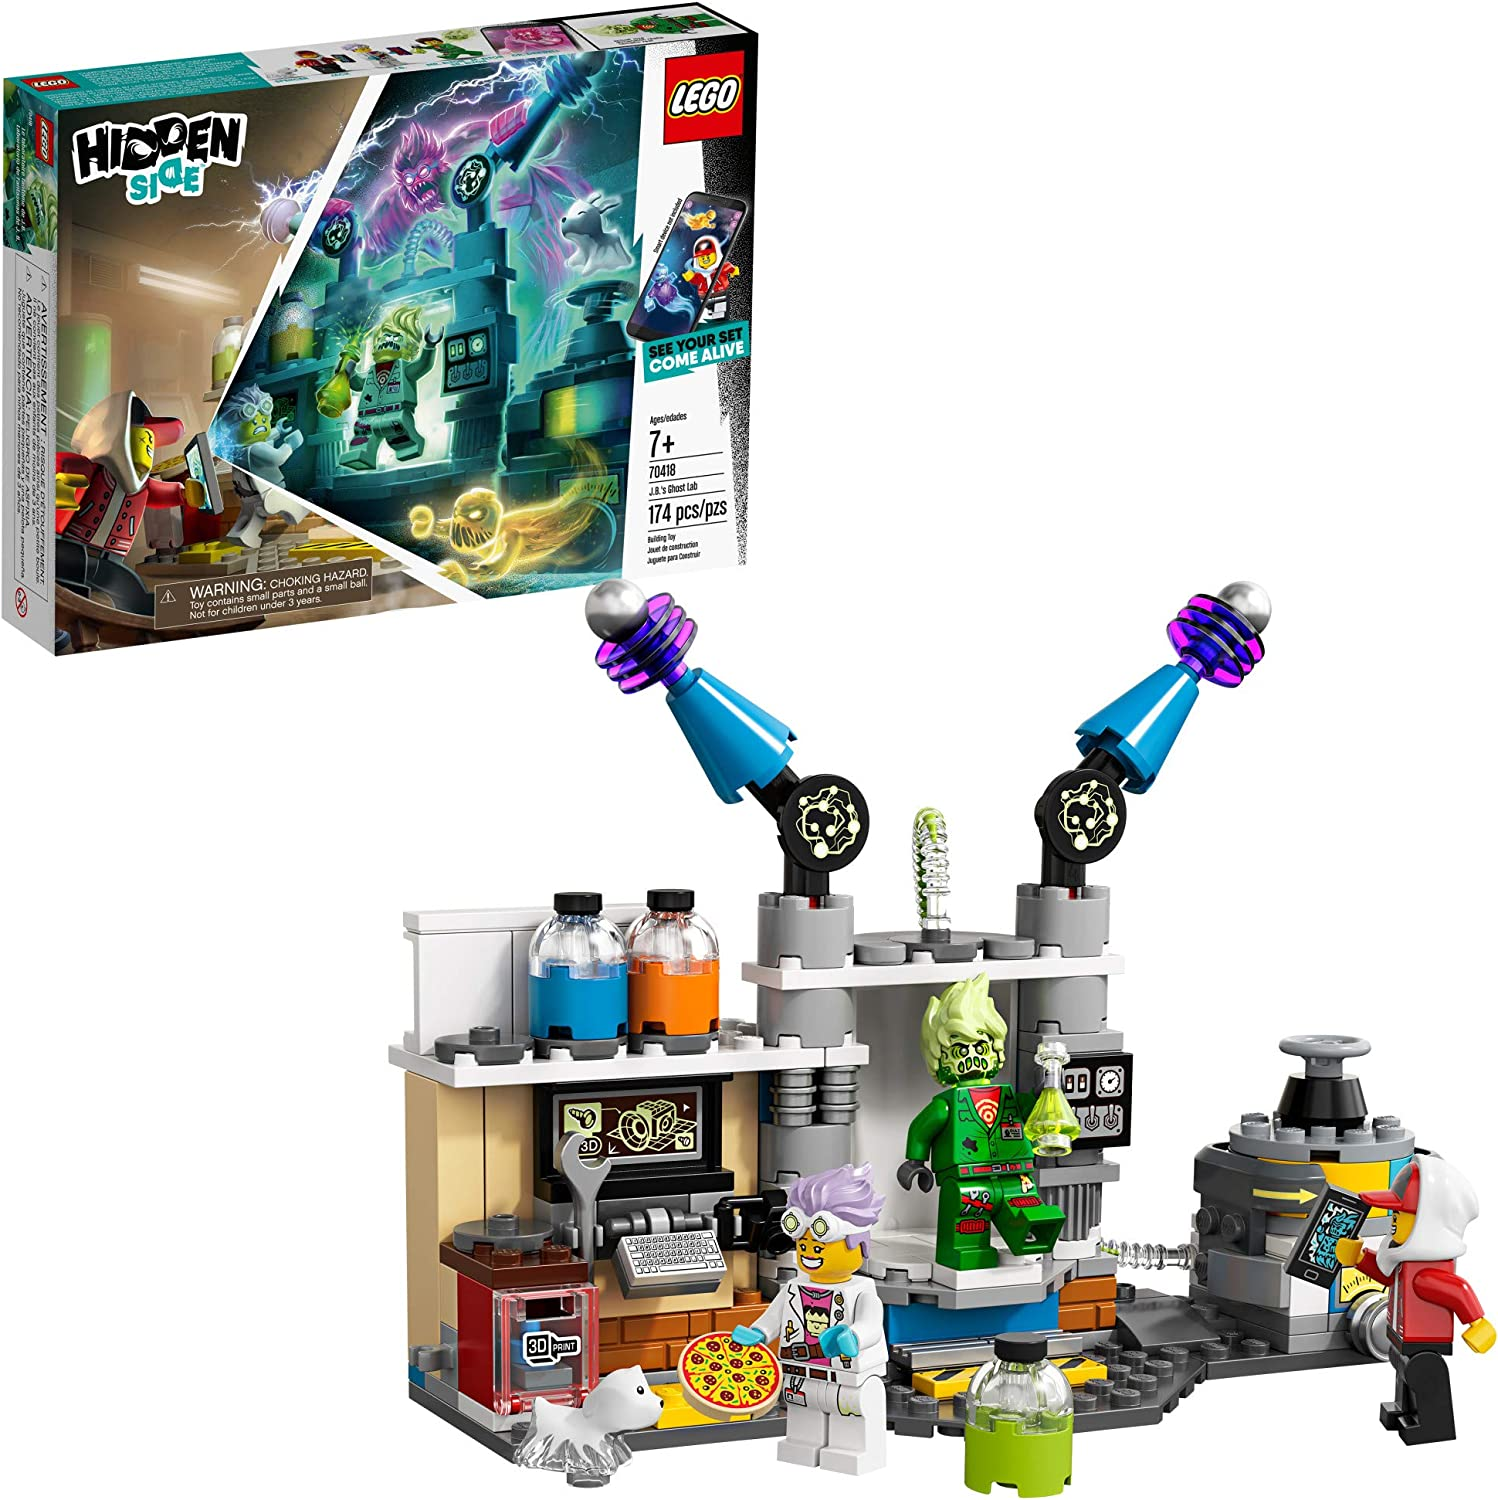 LEGO Hidden Side J.B.'s Ghost Lab 70418 Building Kit, Ghost Playset for 7+ Year Old Boys and Girls, Interactive Augmented Reality Playset (174 Pieces)